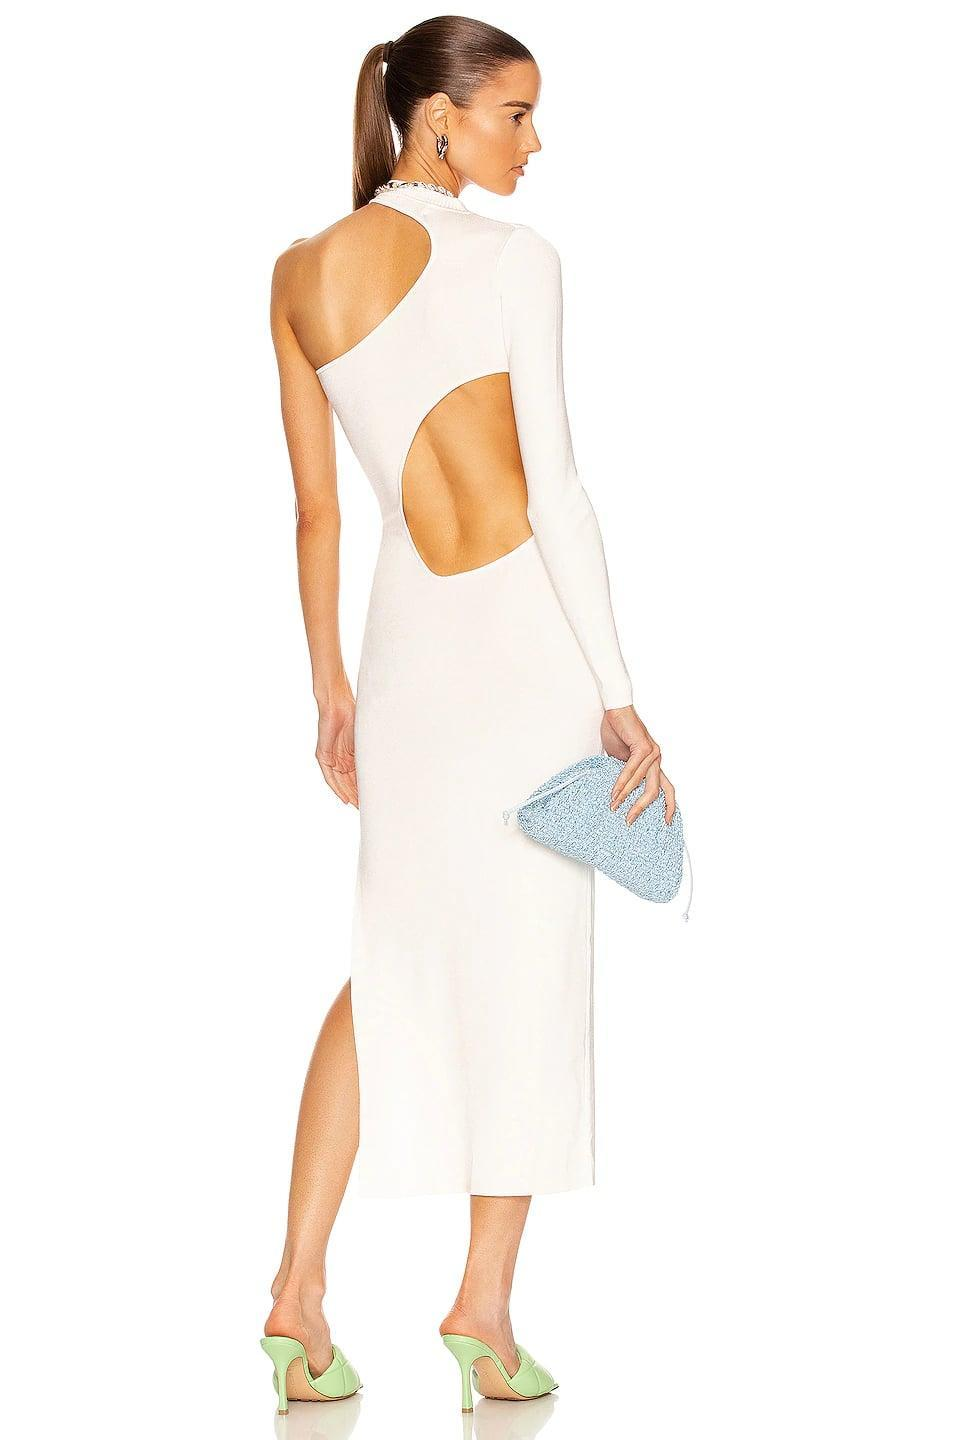 <p>If you're going somewhere fancy, this <span>Aya Muse Anais Dress</span> ($640) will make the best kind of statement. It's fun, modern, and so pretty.</p>